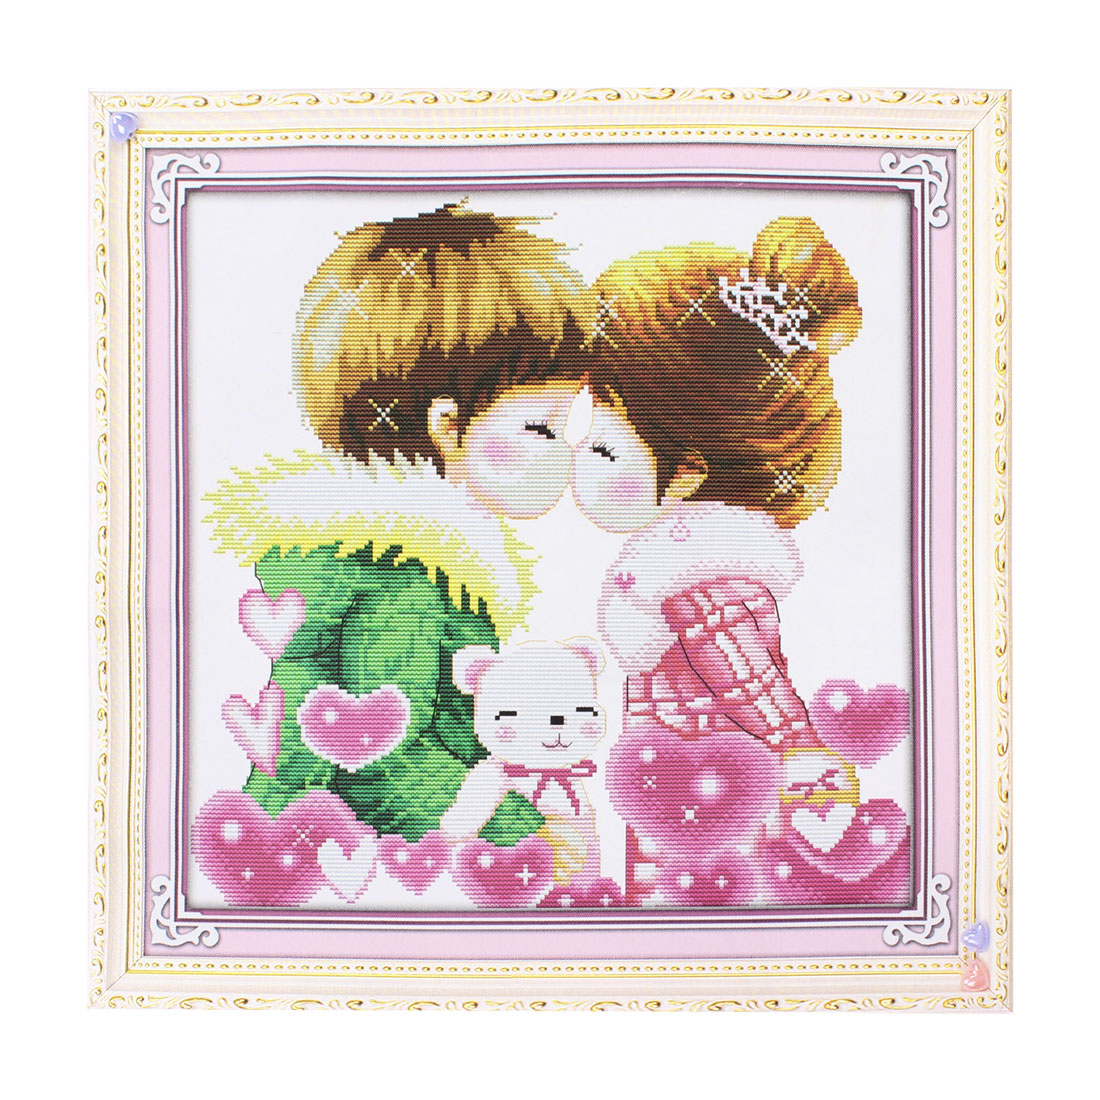 Boy Girl Heart Print Stamped Cross Stitch Counted Kit for Lady Woman